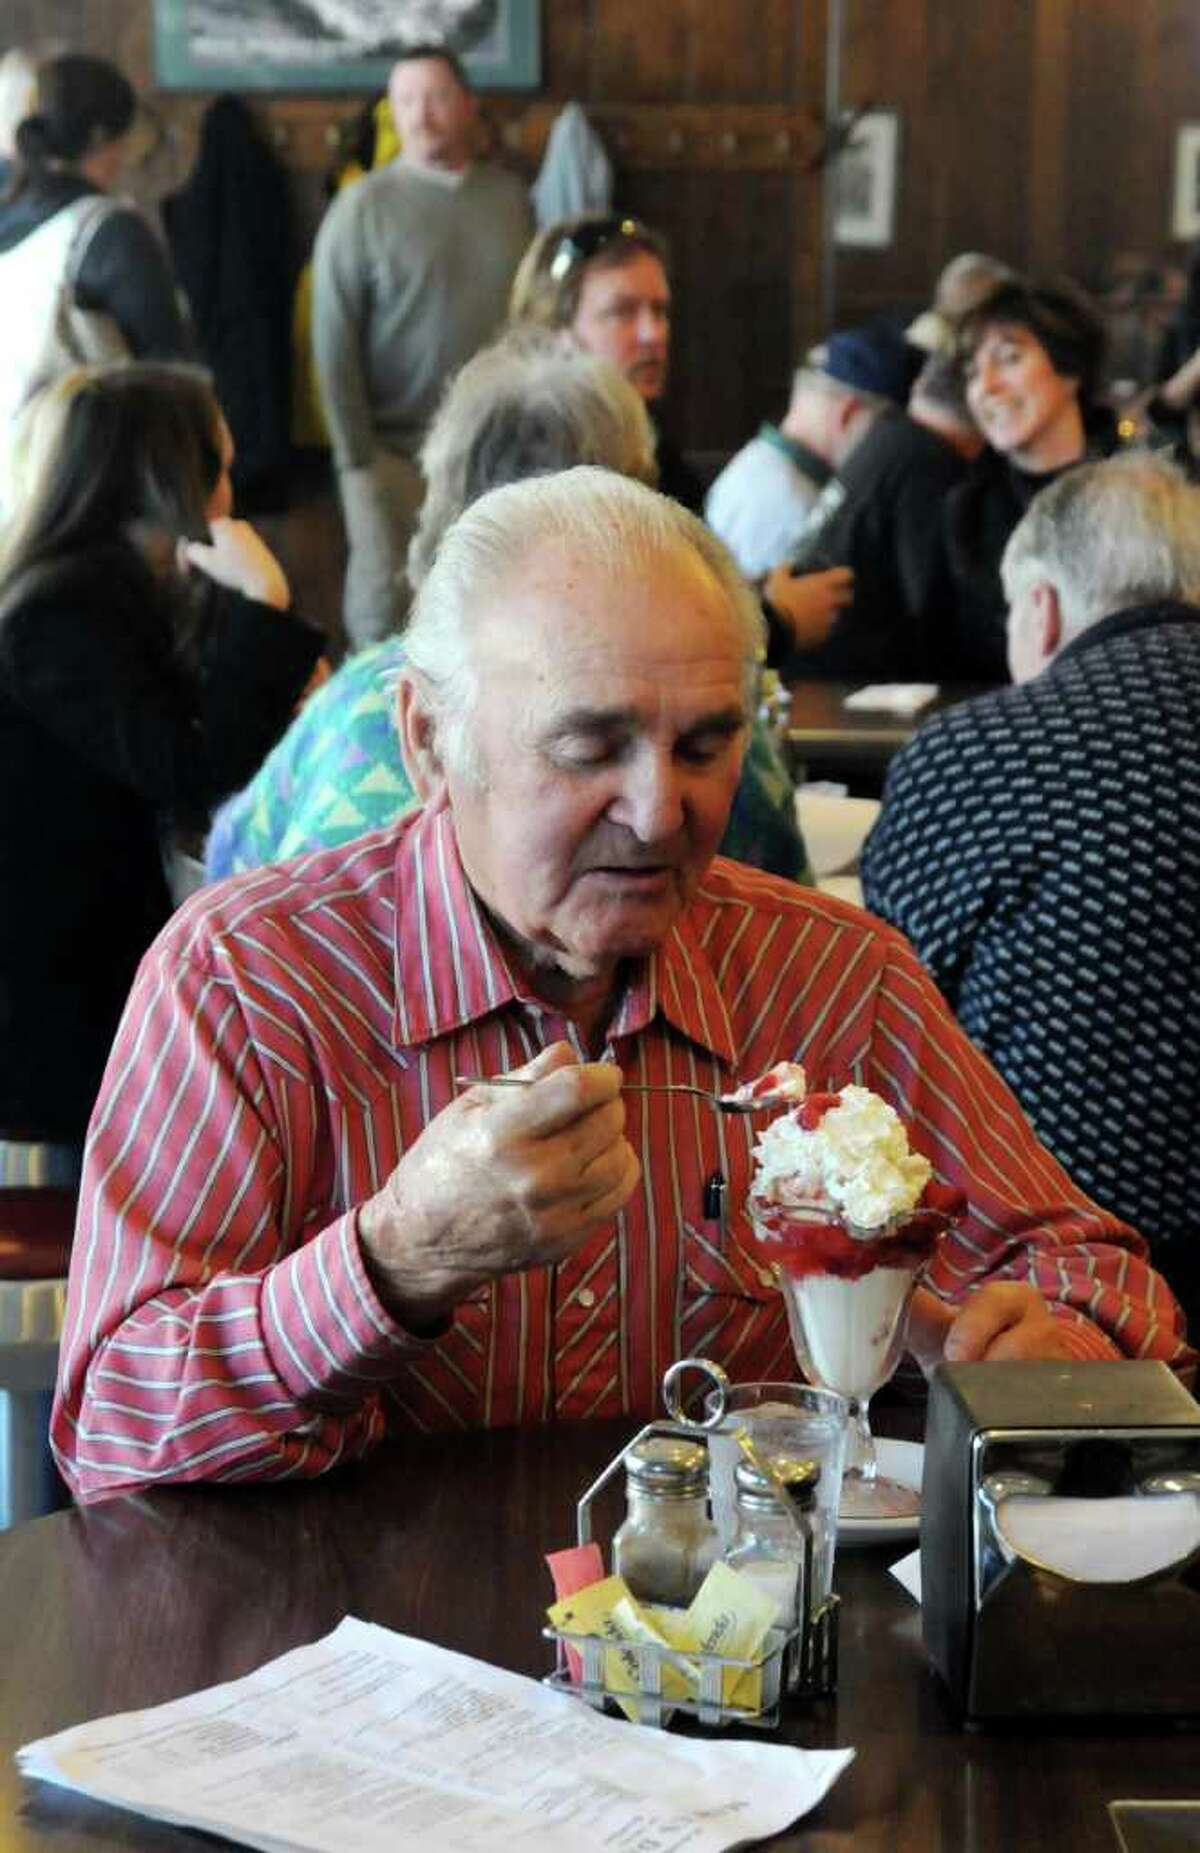 Bob Therrien, 87, of Georgetown enjoys one last strawberry sundae at Marcus Dairy on Sunday Feb. 6, 2011. Therrien has been a patron of Marcus Dairy for 80 years. Sunday was Marcus Dairy's last day of business before closing it's doors.